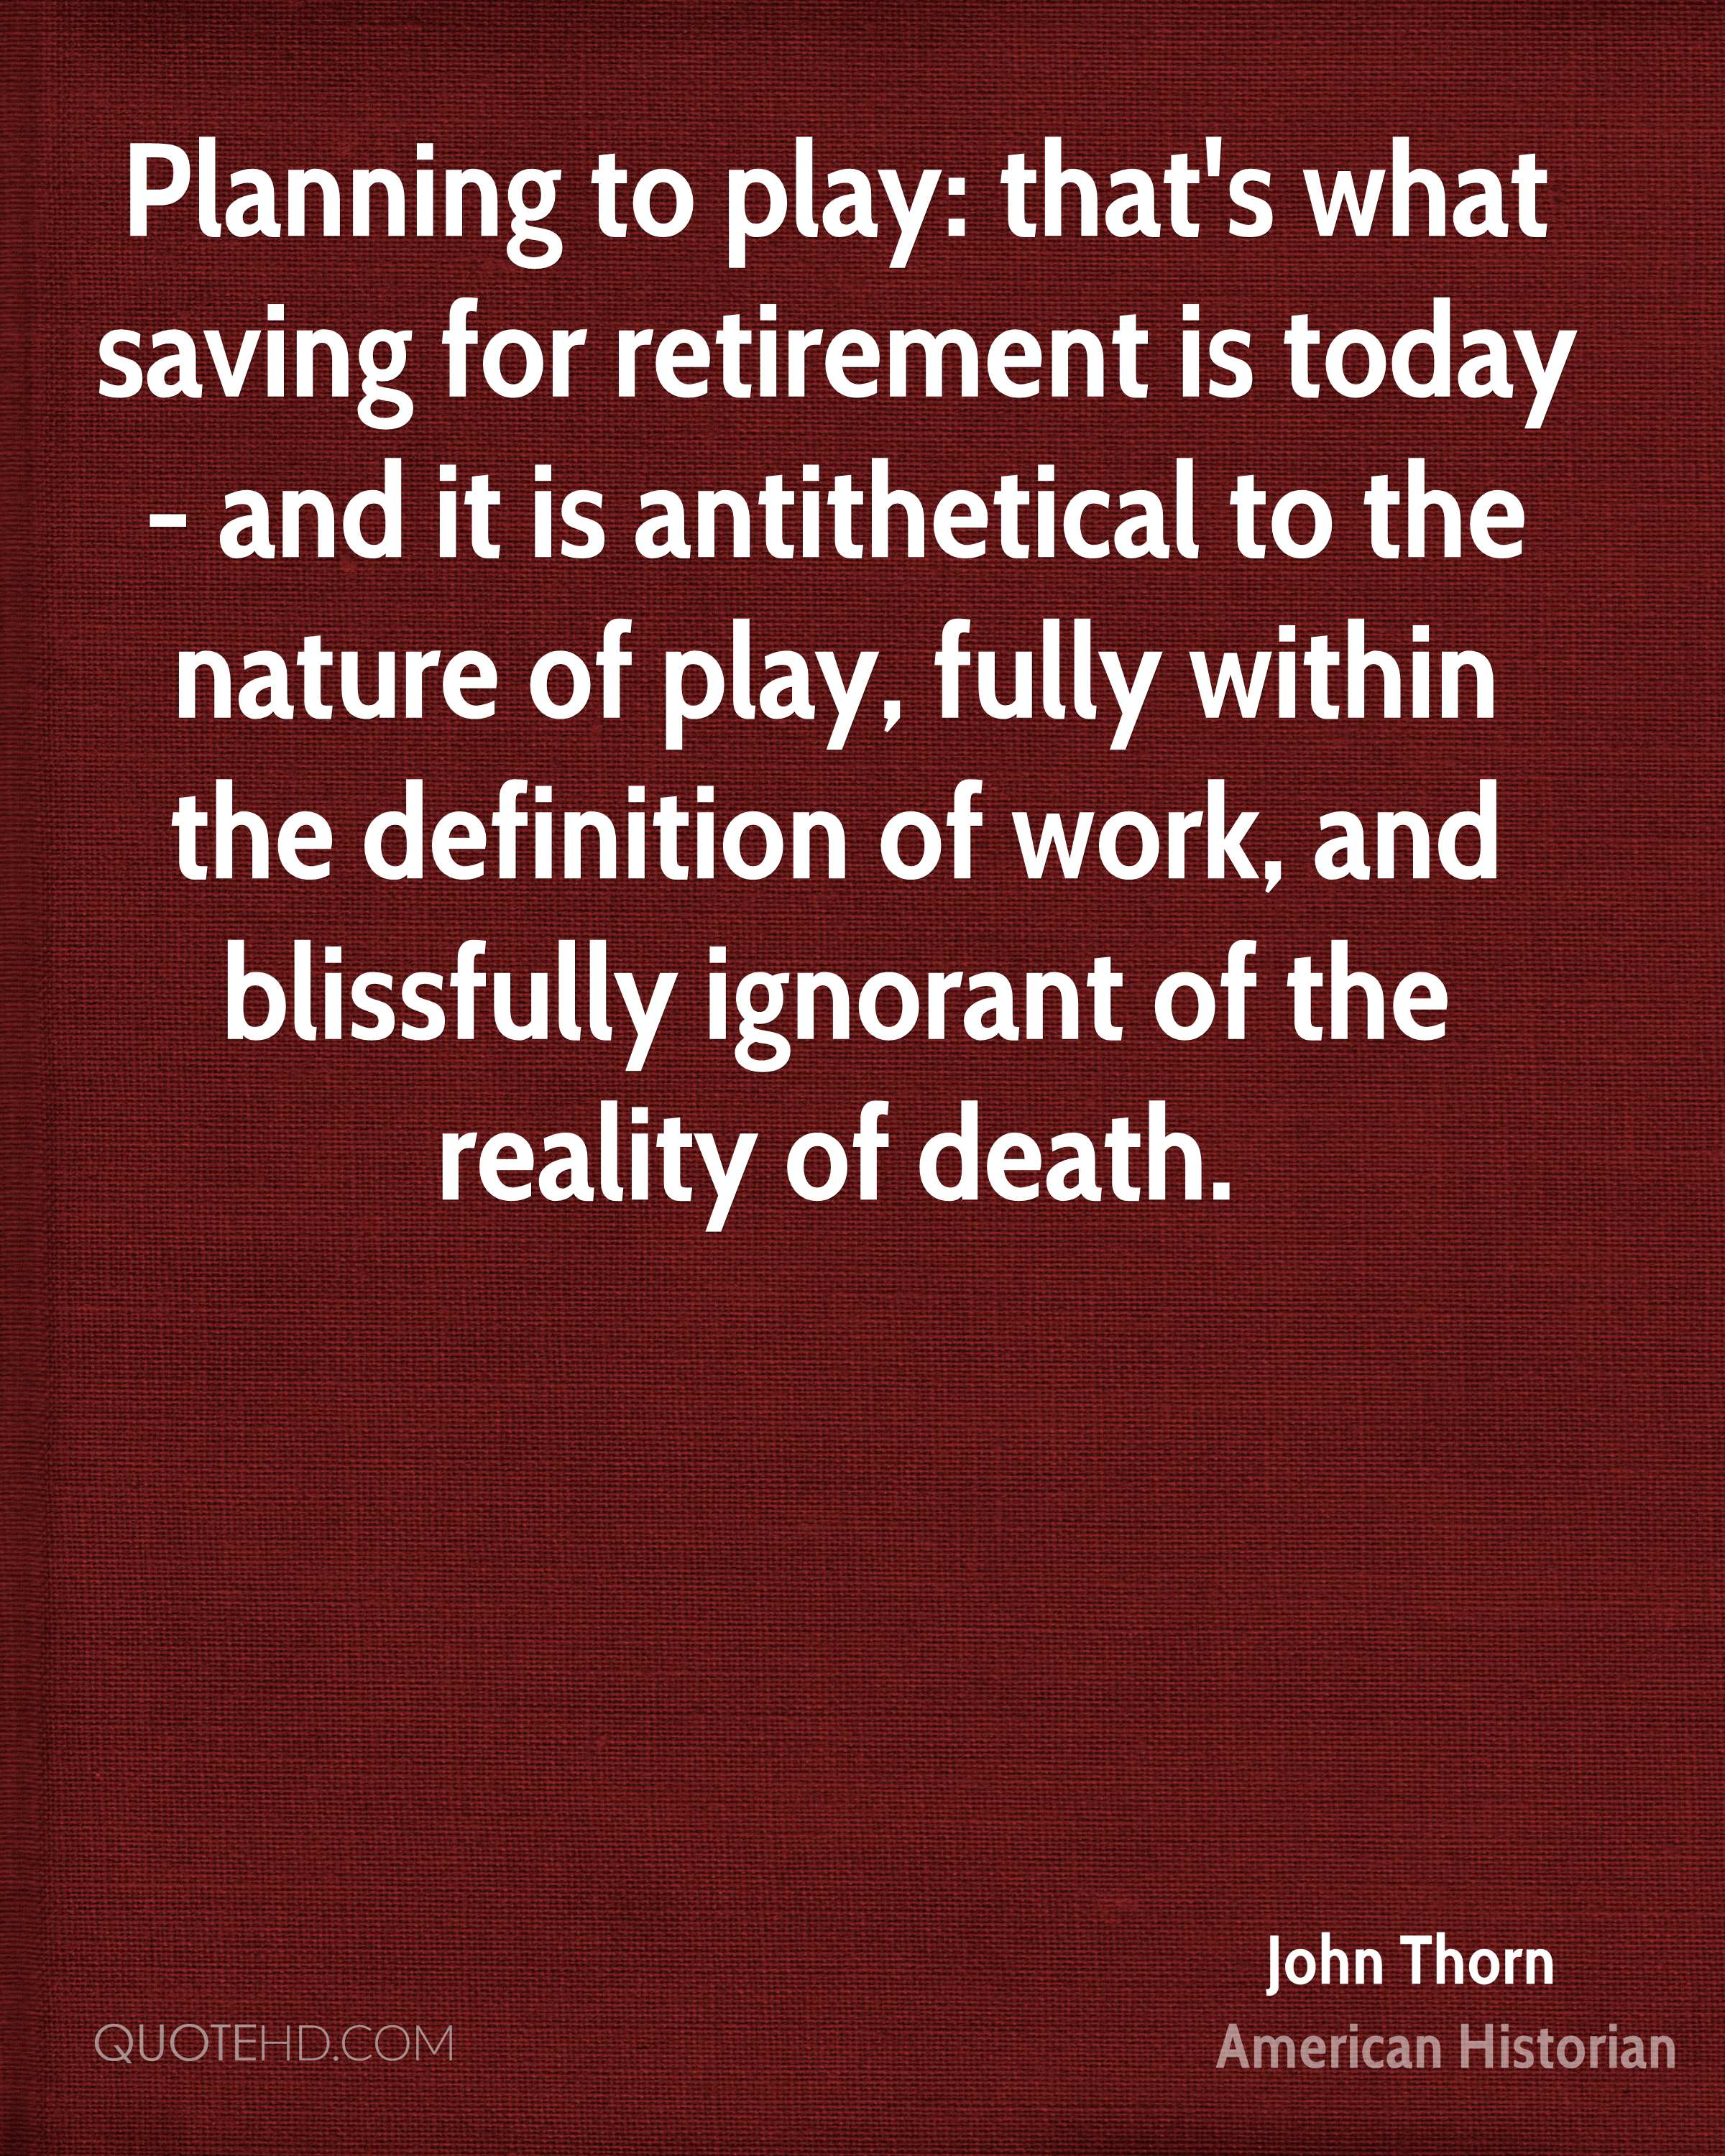 Planning to play: that's what saving for retirement is today - and it is antithetical to the nature of play, fully within the definition of work, and blissfully ignorant of the reality of death.